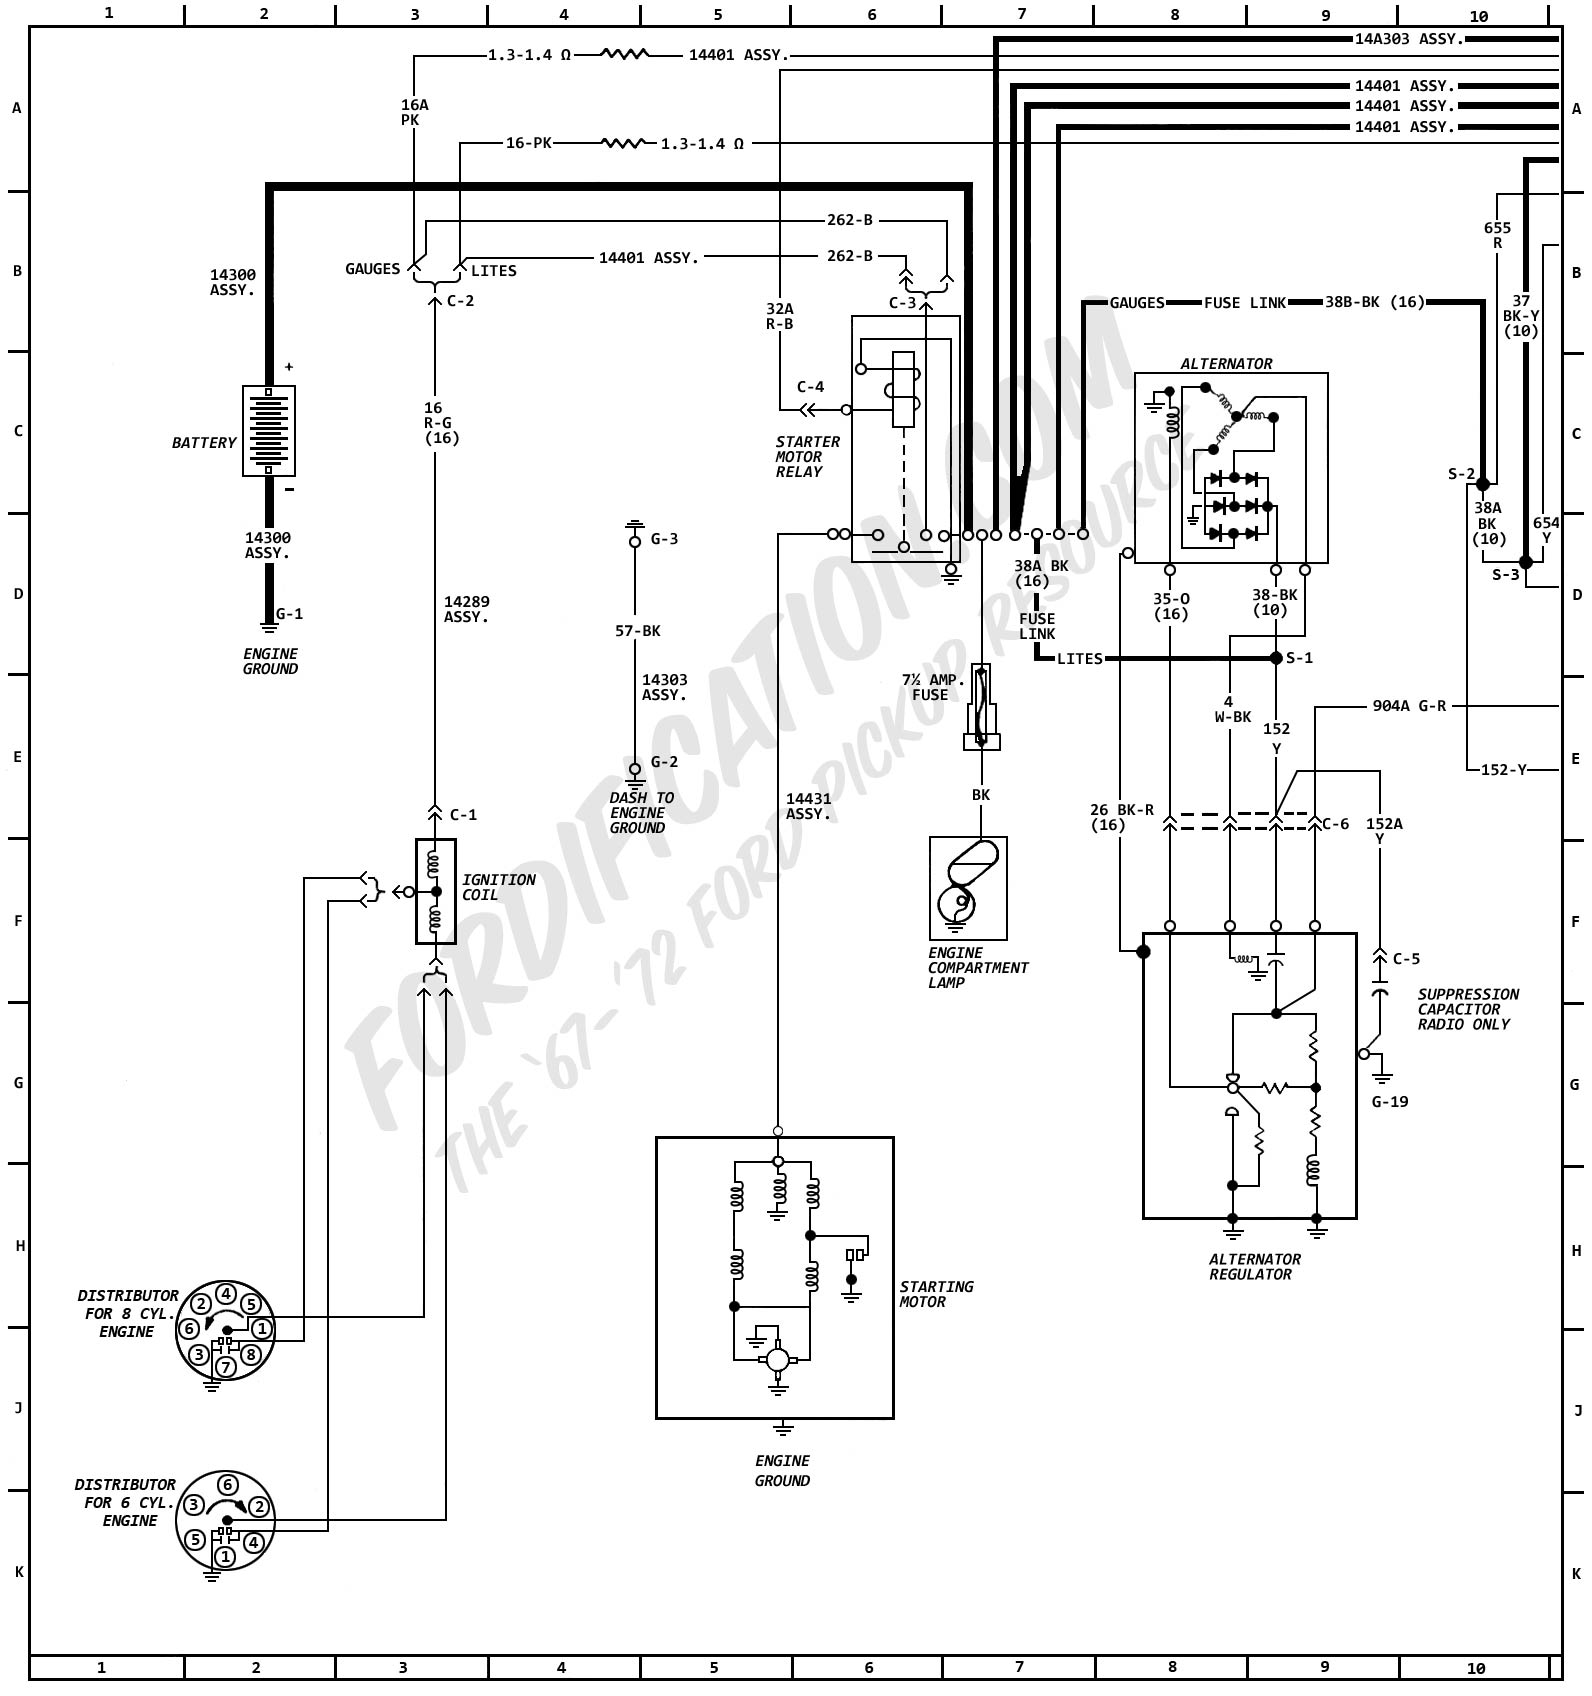 72 Chevy Pickup Wiring Diagram Will Be A Thing 1973 C10 Harness Ford Diagrams Schematic Rh Theodocle Fion Com Starter